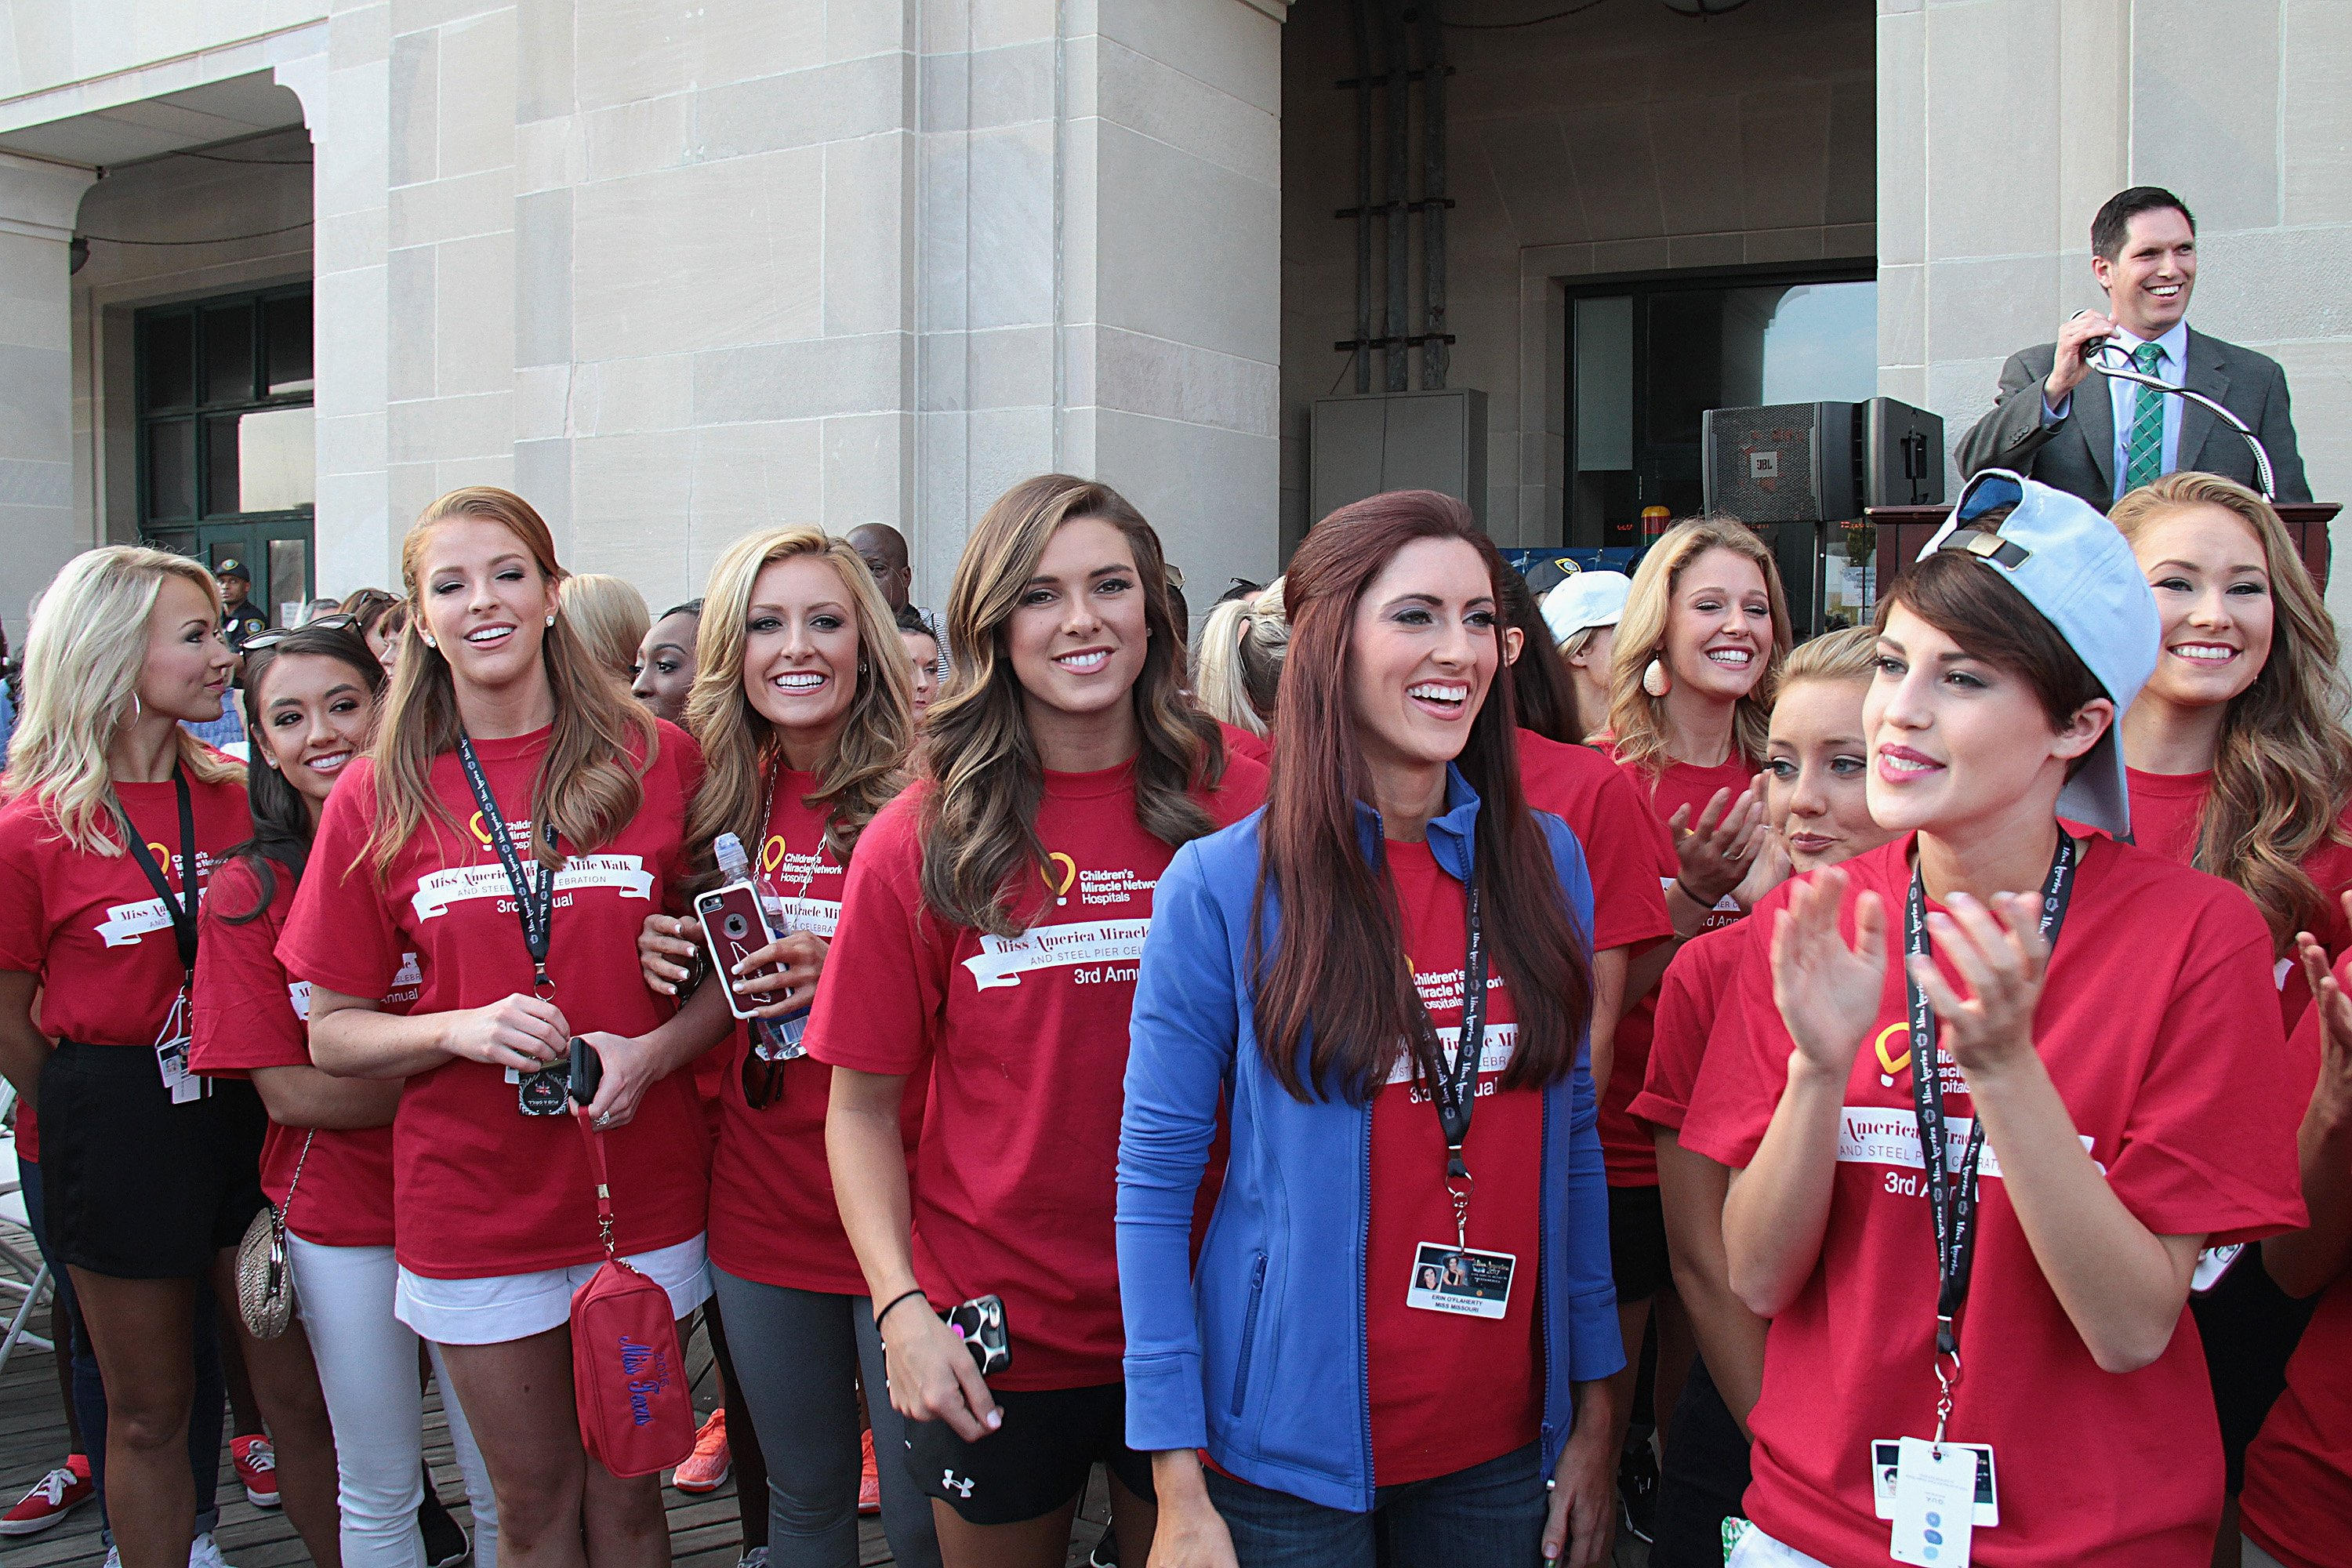 Miss America 2017 contestants attend Miss America 2017 ' Miracle Mile Walk' on September 9, 2016 in Atlantic City, New Jersey